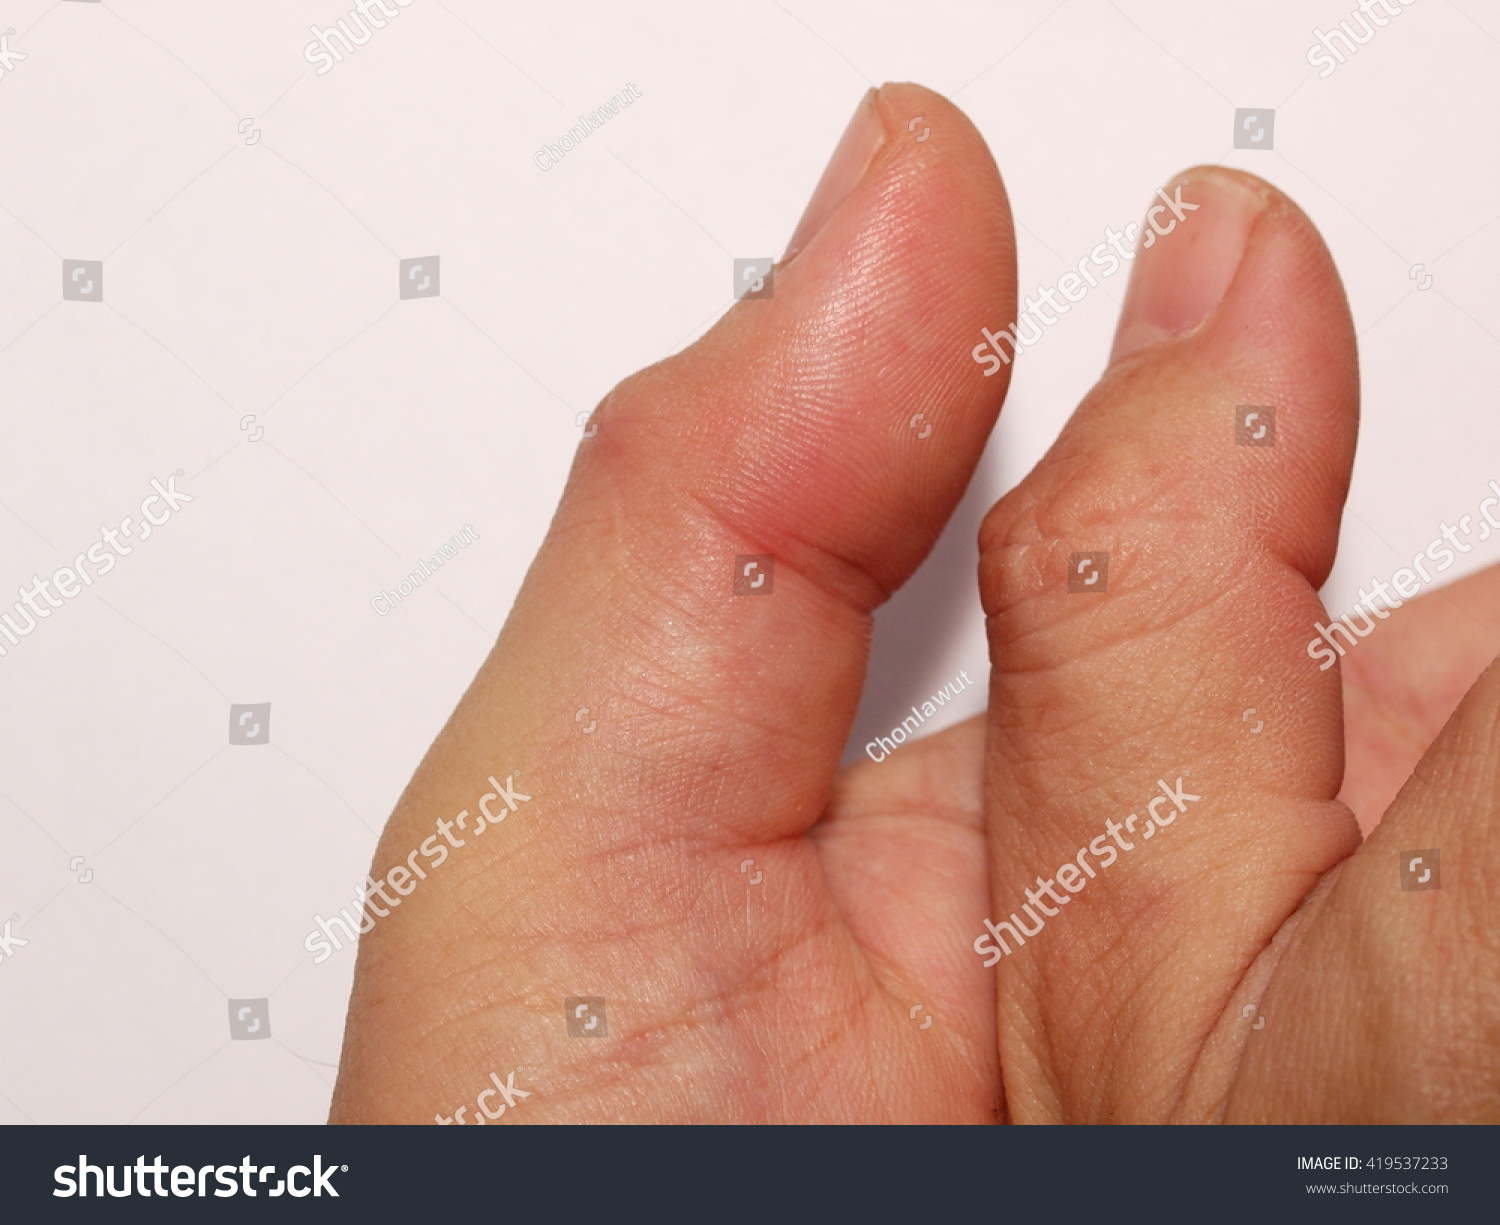 gout treatment when taking warfarin gout normal uric acid levels can you get gout in both big toes